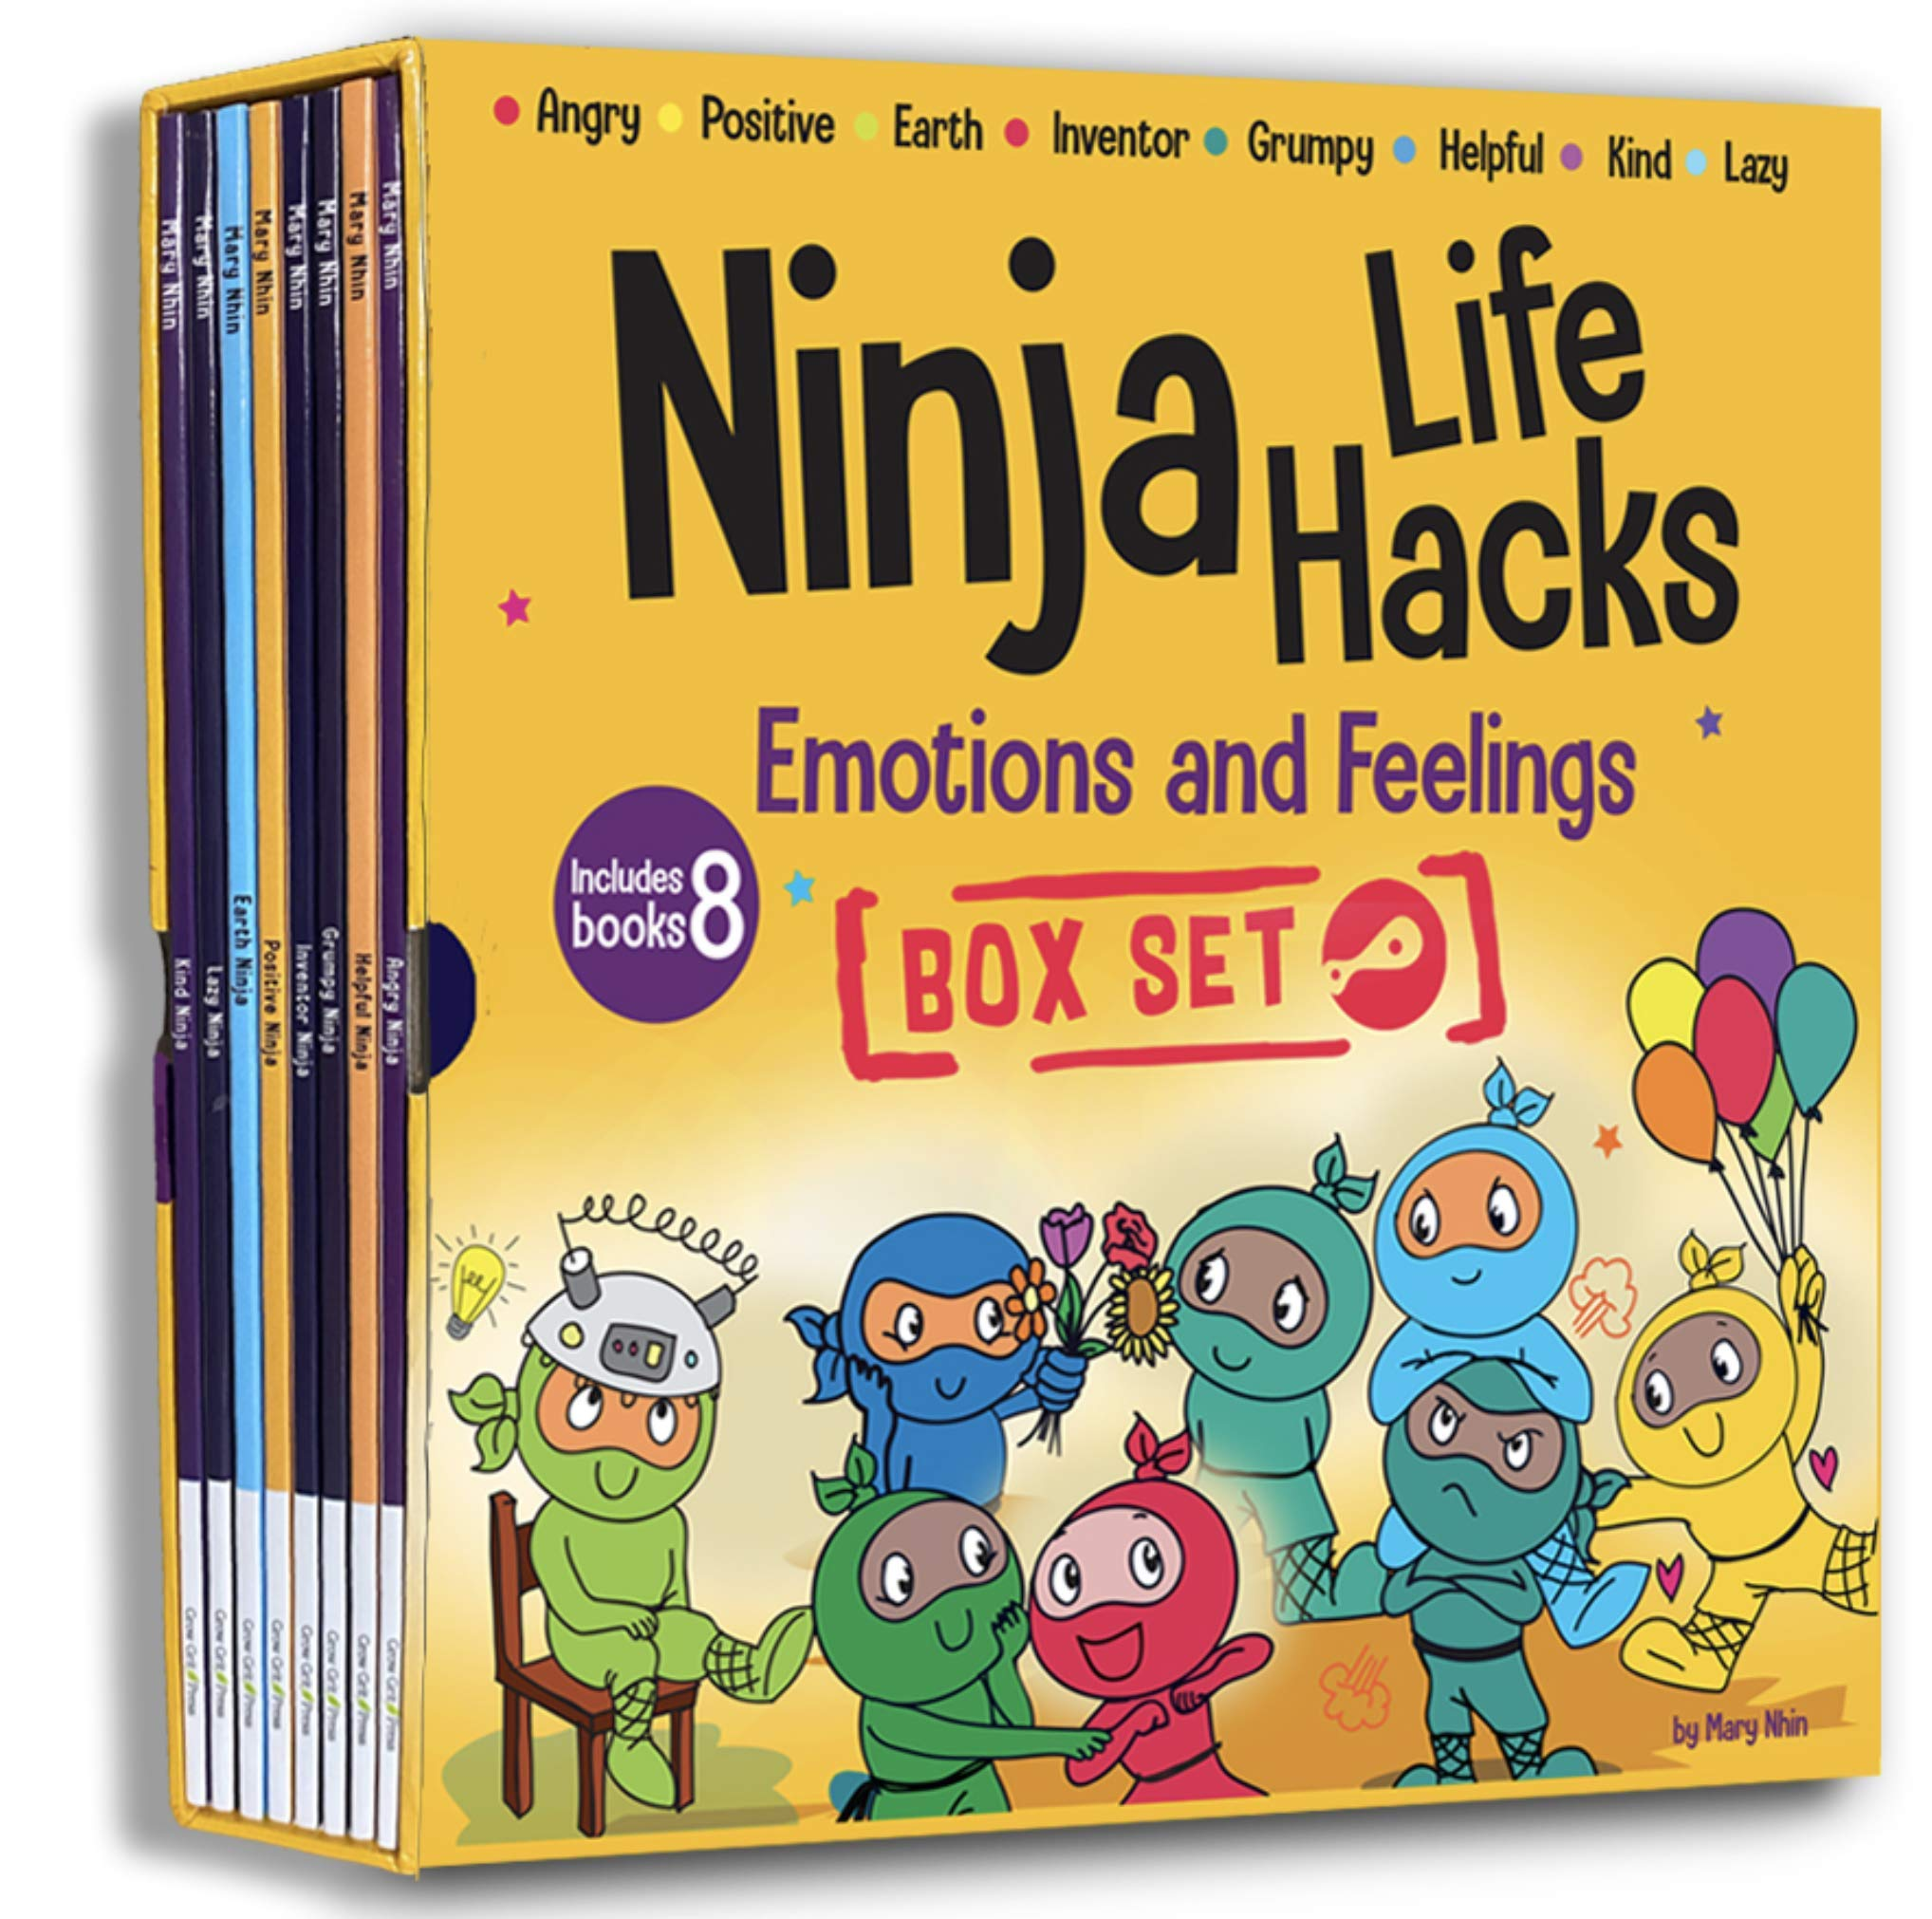 Ninja Life Hacks Emotions and Feelings 8 Book Box Set (Books 1-8: Angry, Inventor, Positive, Lazy, Helpful, Earth, Grumpy, Kind)